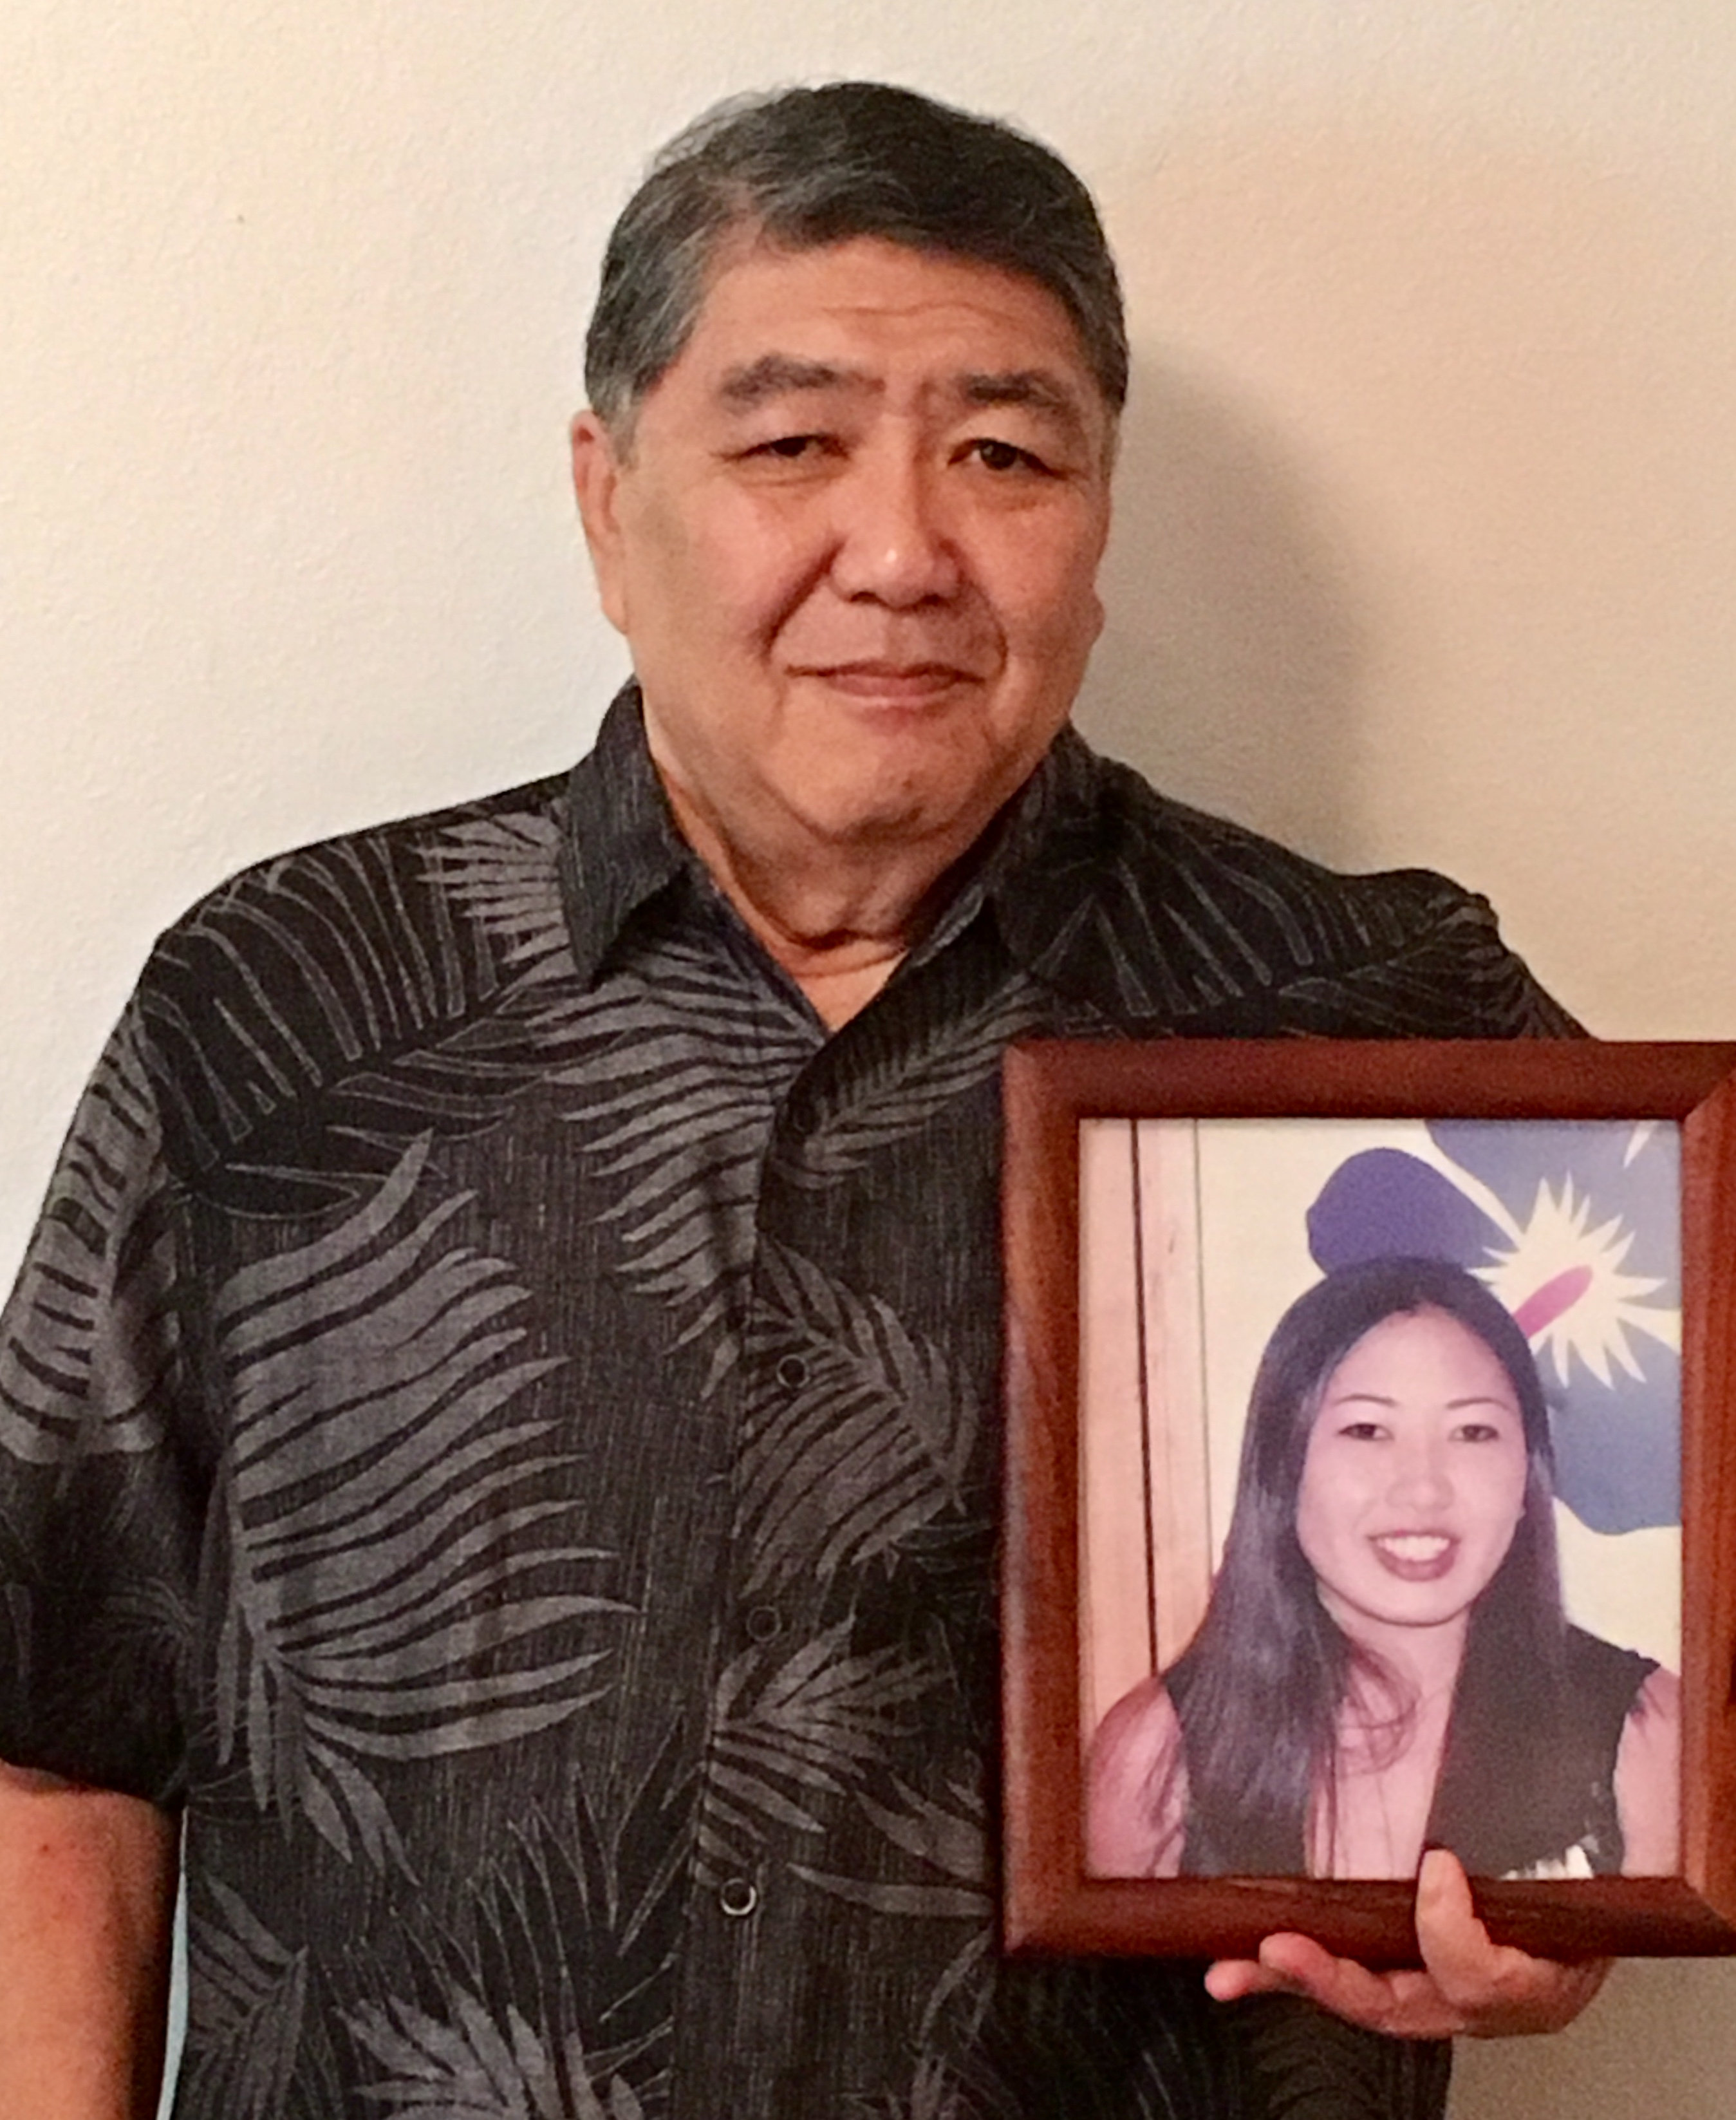 George Young holds a framed photo of his late daughter Tim Young in Hilo, Hawaii, U.S., July 30, 2018. Picture taken July 30, 2018. Courtesy Lynn Viale/Handout via REUTERS